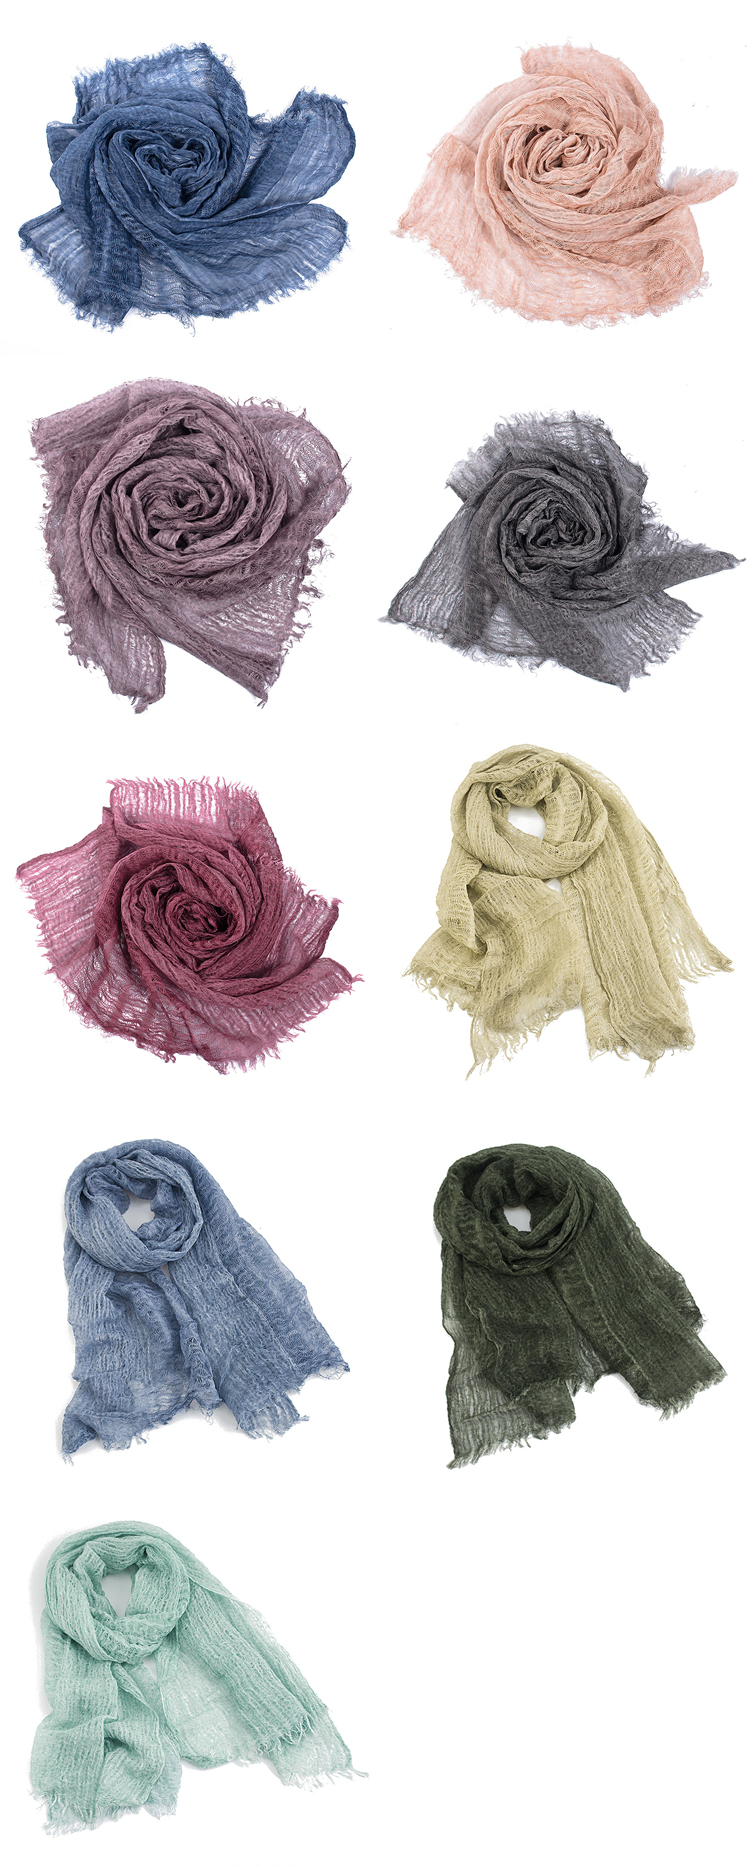 2019 Wholesale Fashion Solid Color Ladies Scarves Shawls Custom Tie Dye Linen Scarf For Women